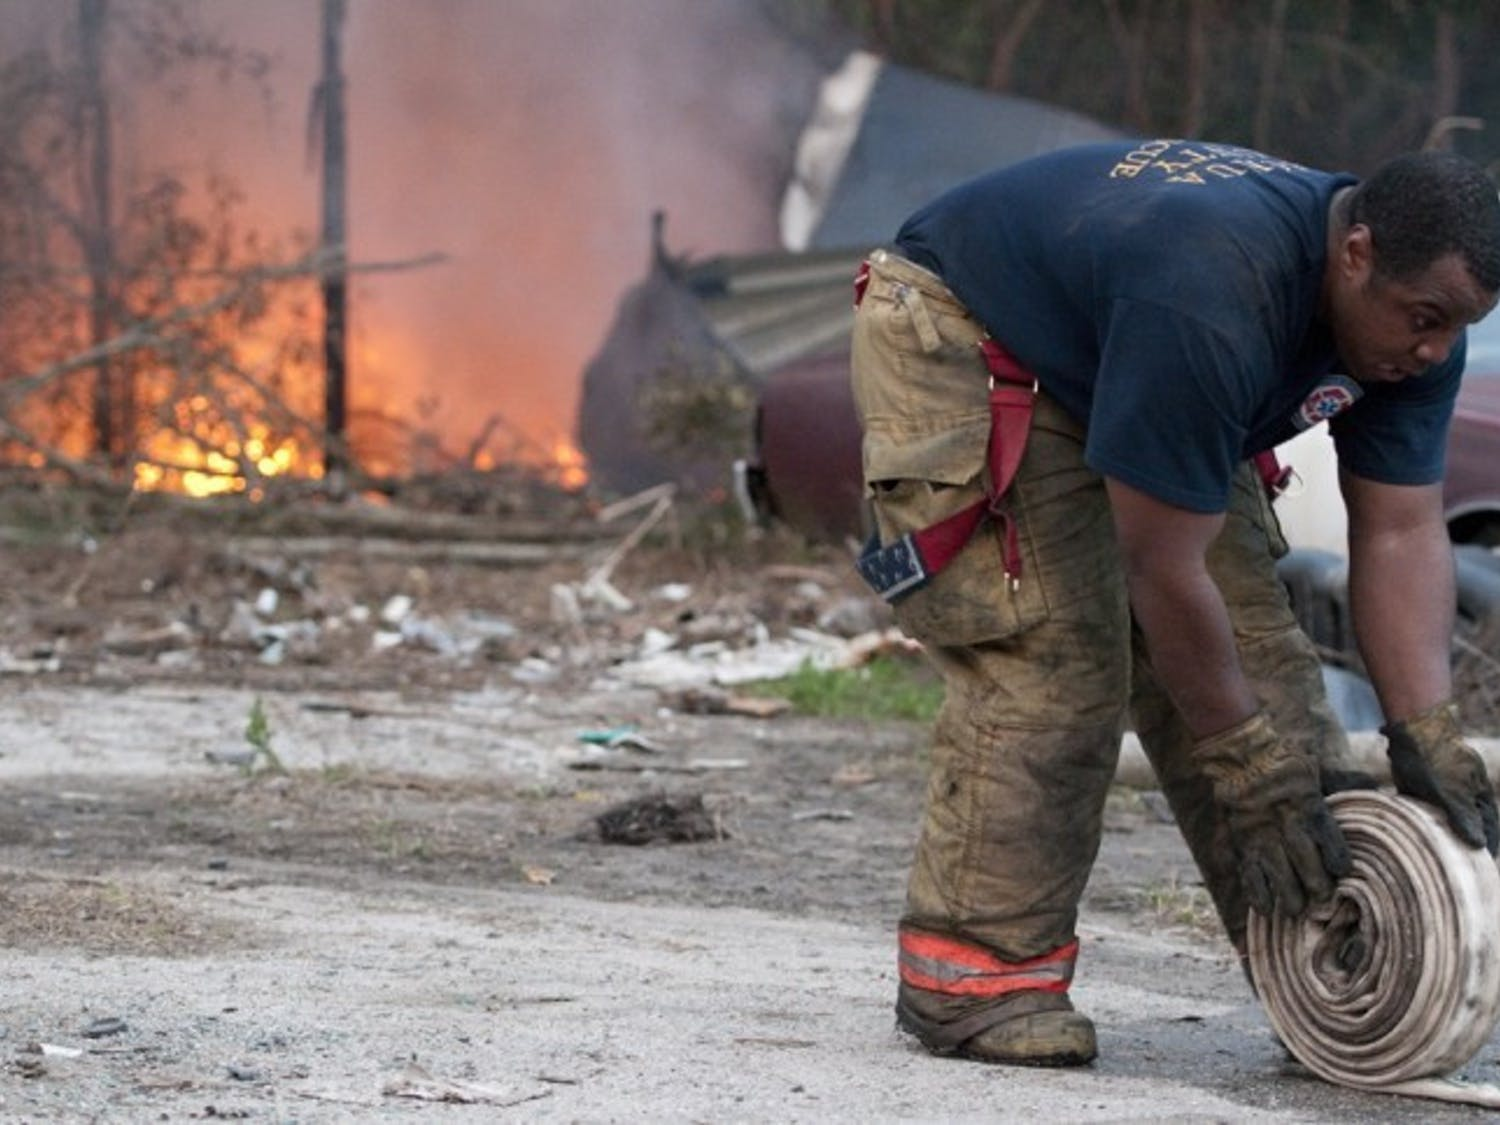 An Alachua County Fire Rescue Worker packs up equipment at 3530 SE Hawthorne Road after tending to a commercial tire fire Tuesday evening.